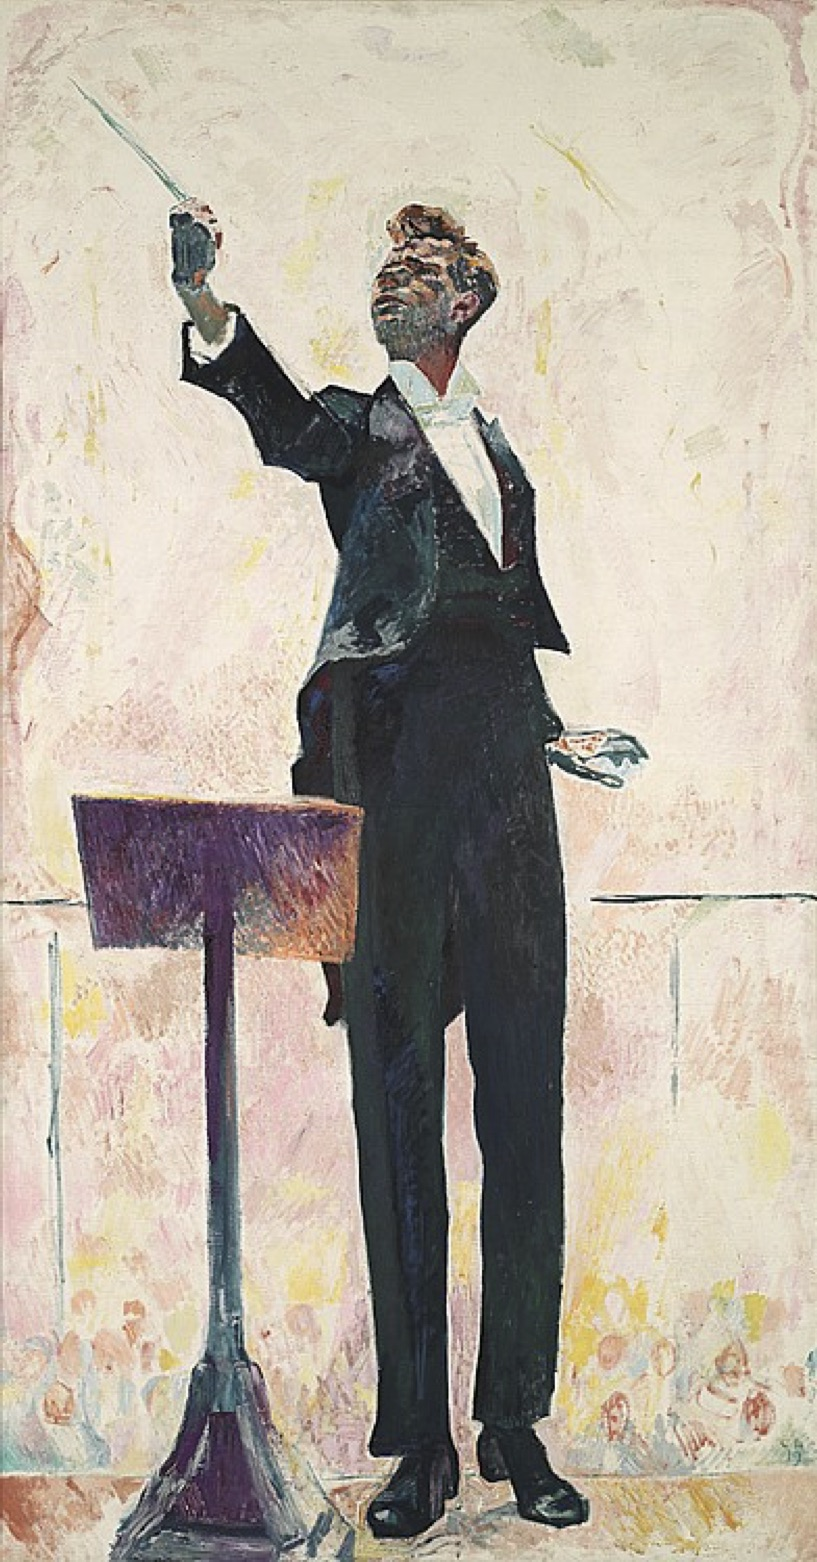 Cuno Amiet, The Conductor, 1919 - exhibited in Madrid and Barcelona, 1956